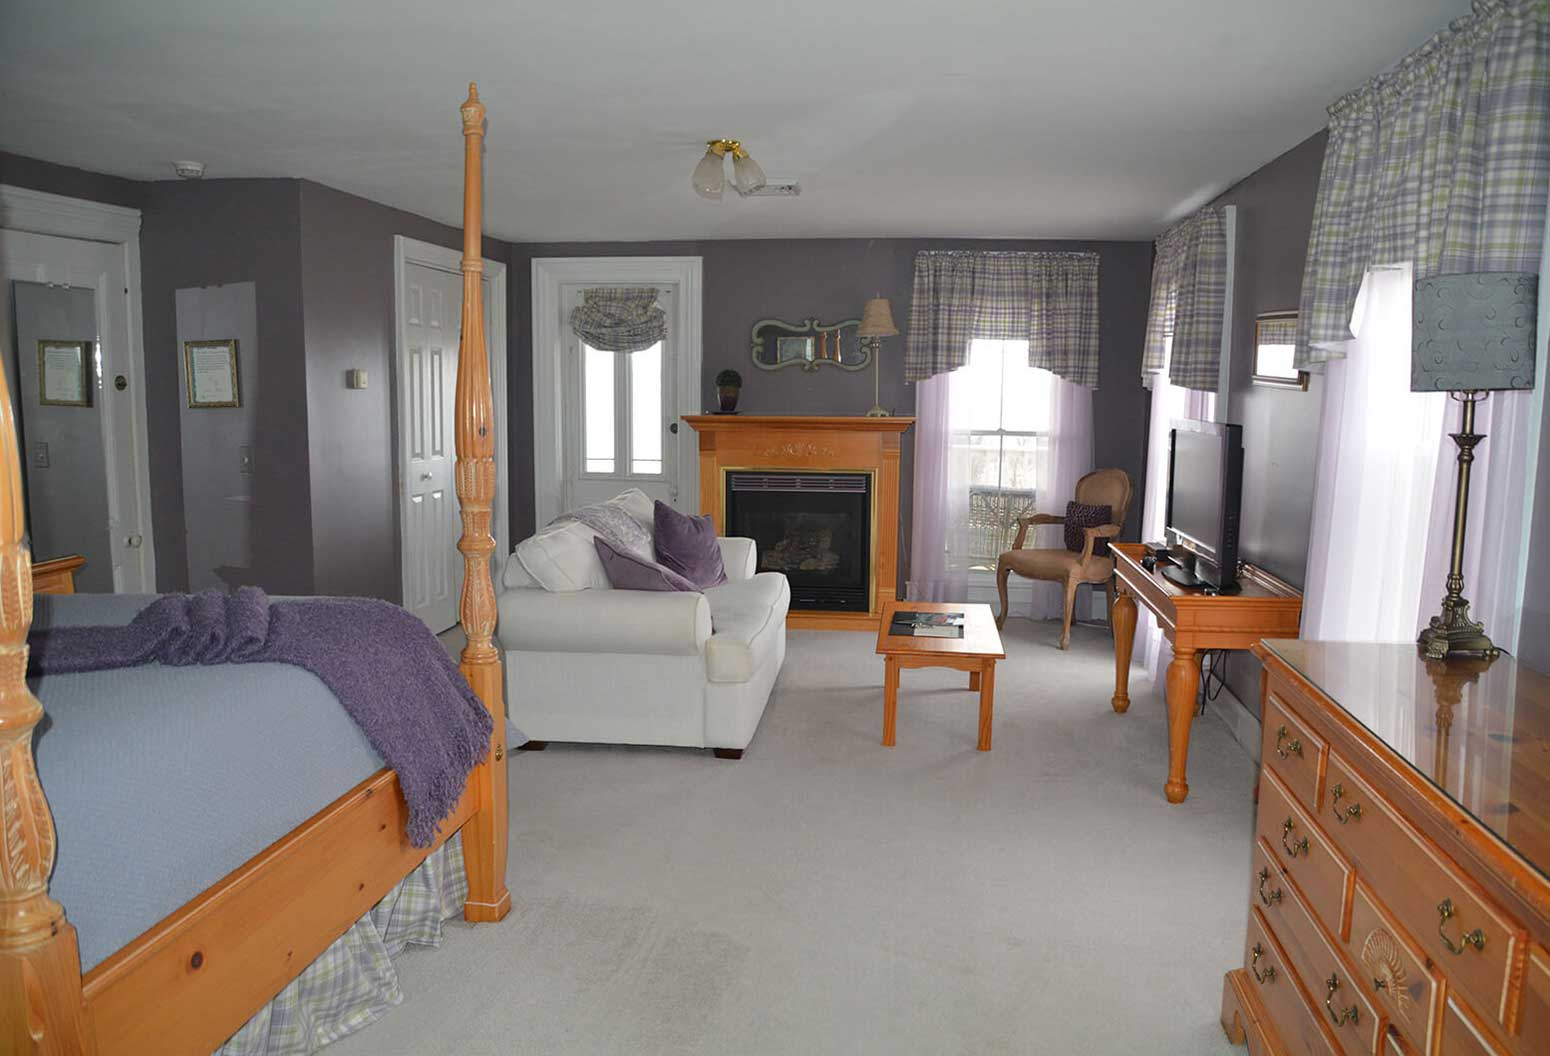 When staying at Magnolia Place, Magnolia Place Bed & Breakfast, Finger Lakes, NY